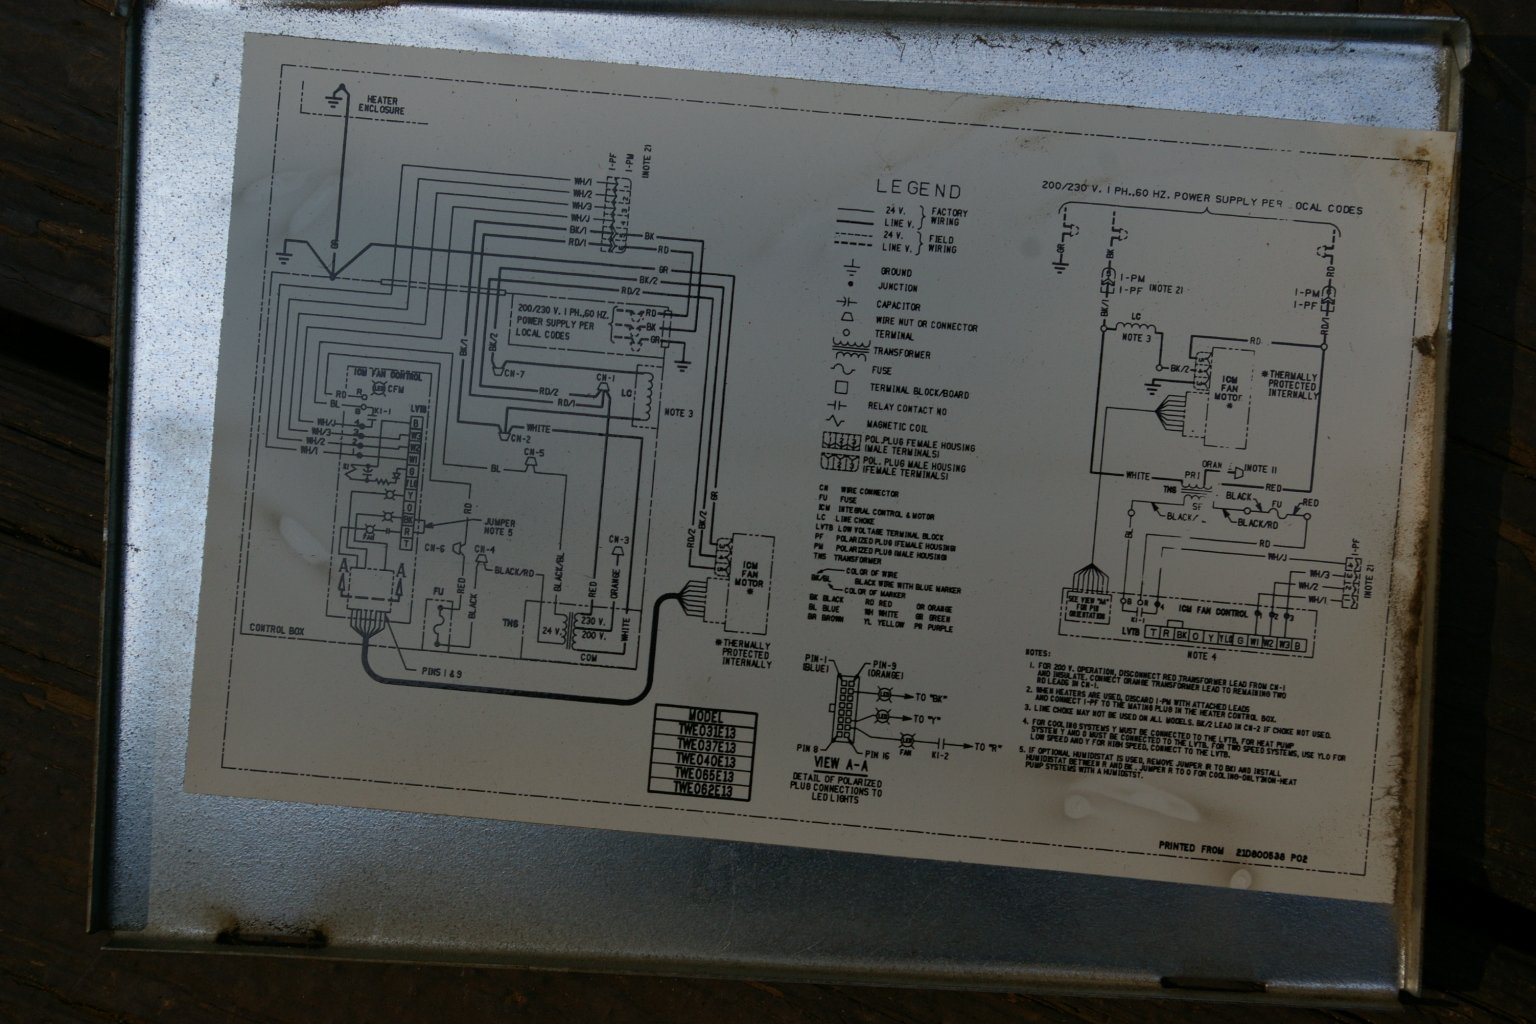 I Have A Trane Model Twe031e130a1 Air Handler  It Is Part